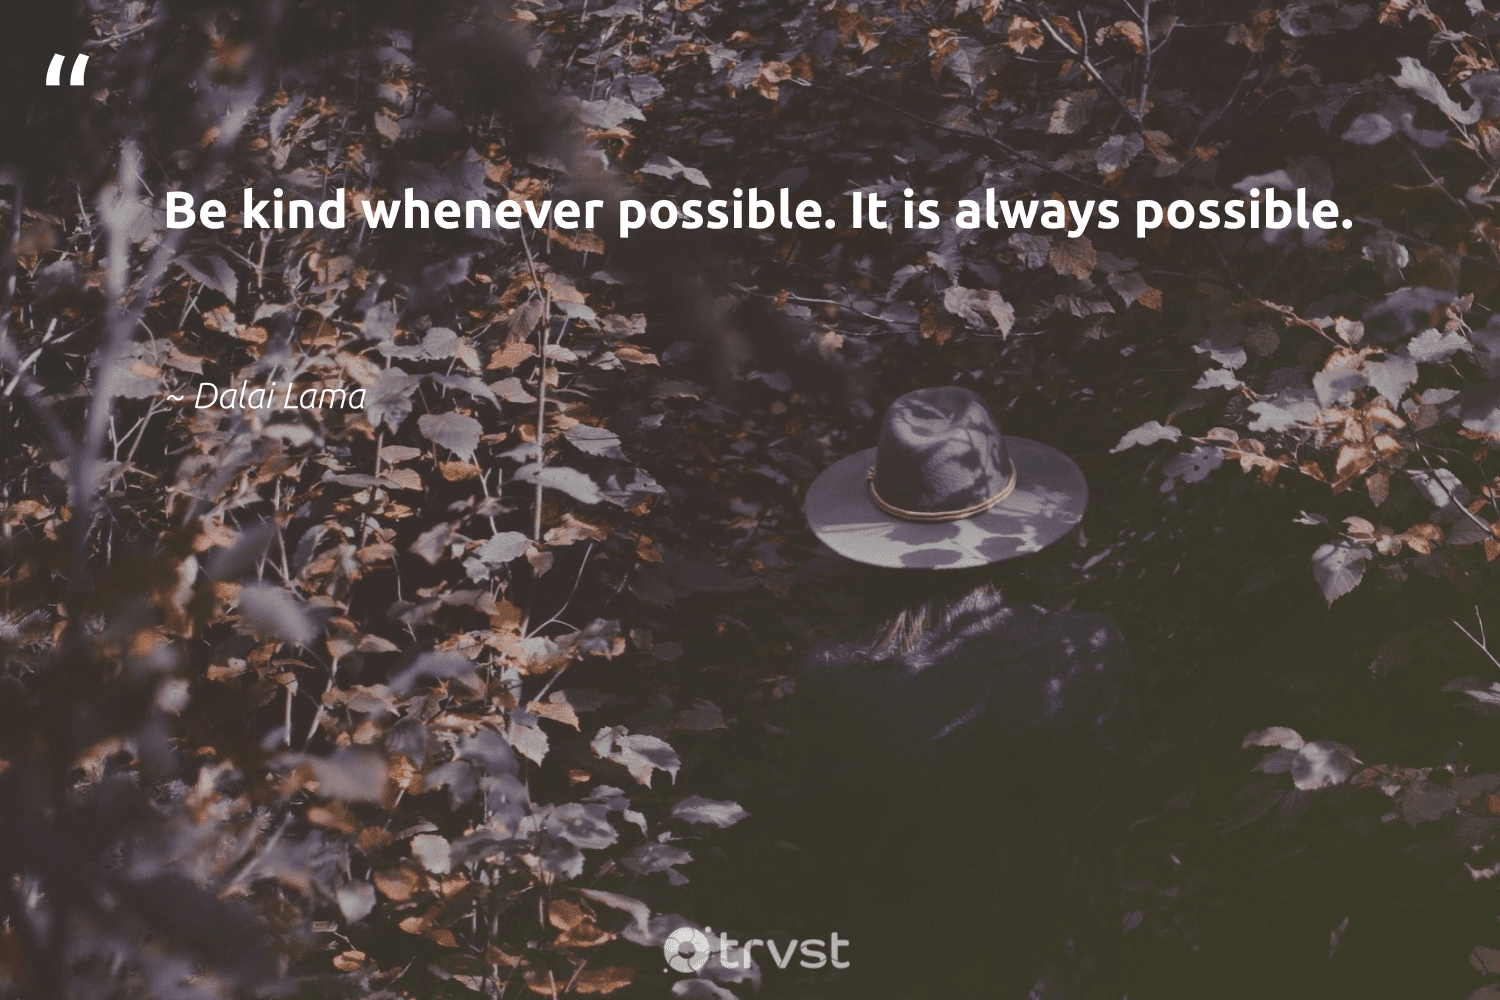 """""""Be kind whenever possible. It is always possible.""""  - Dalai Lama #trvst #quotes #begreat #takeaction #nevergiveup #dosomething #futureofwork #collectiveaction #softskills #impact #beinspired #dogood"""